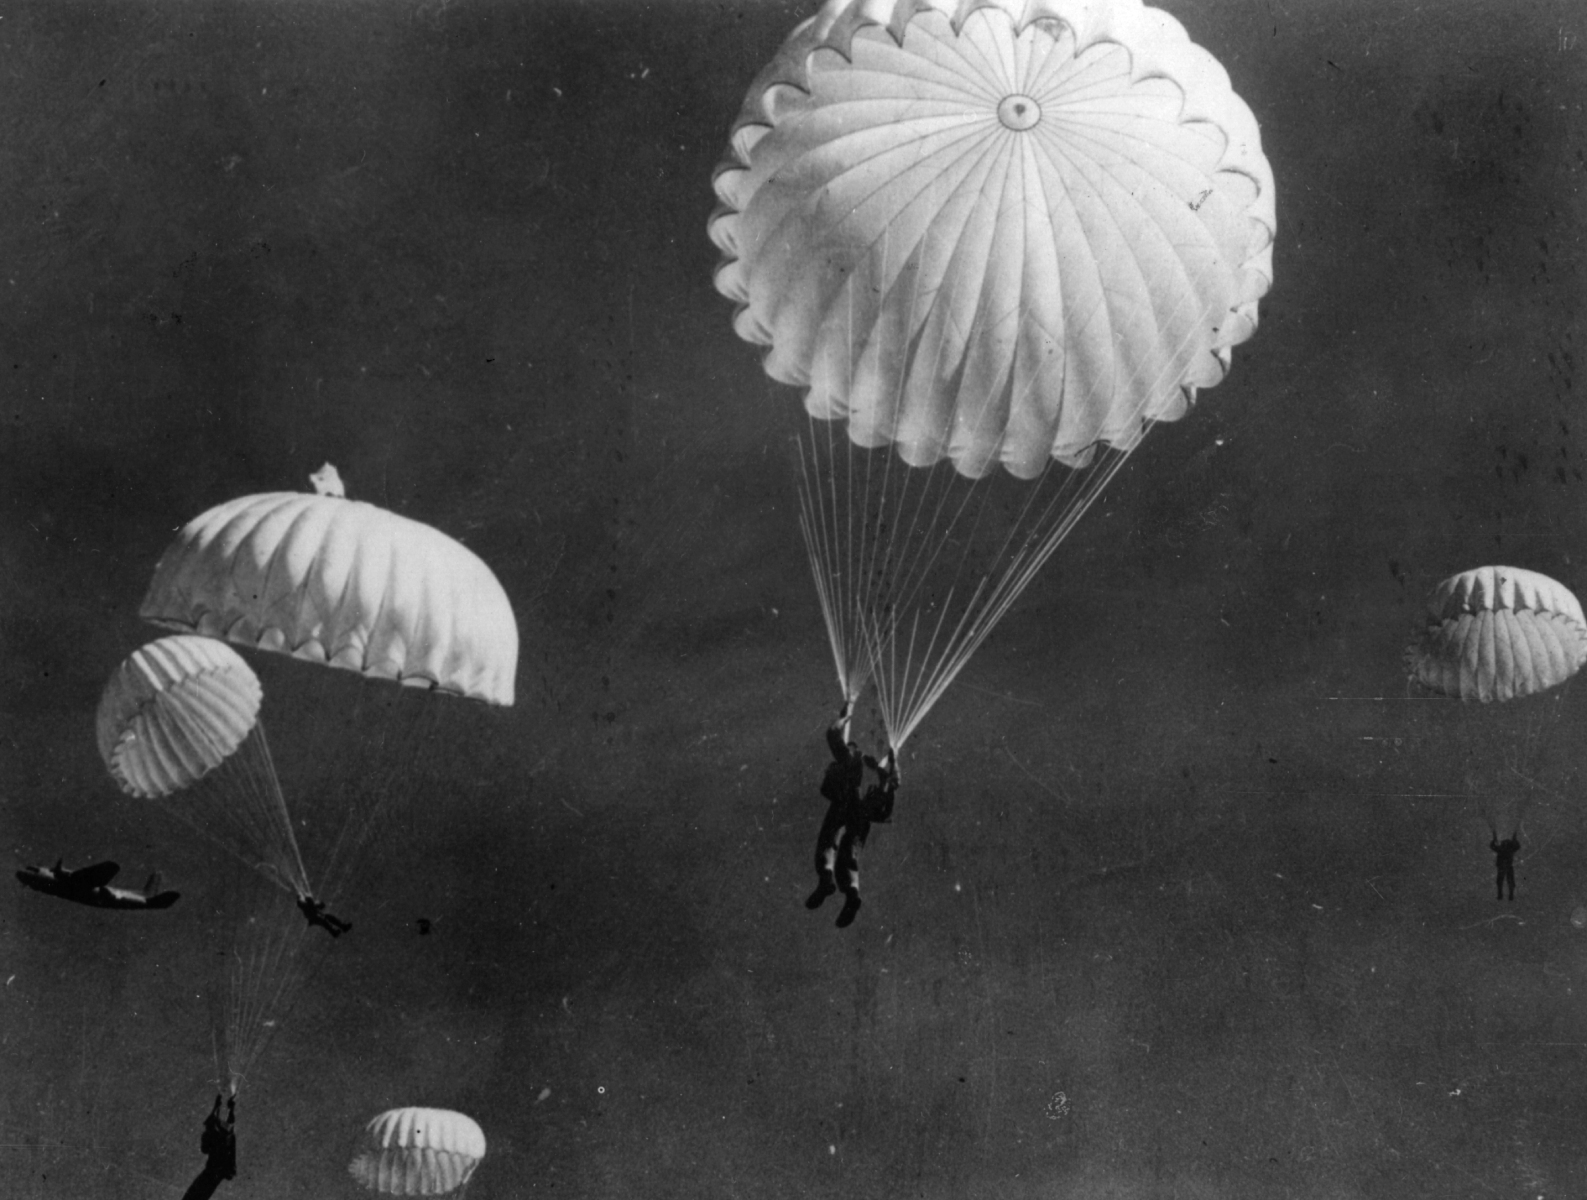 These paratroopers, members of US Paramarine troops, take a practice jump -- similar to what carpetbaggers may have been required to do -- in 1943. (Getty Images)